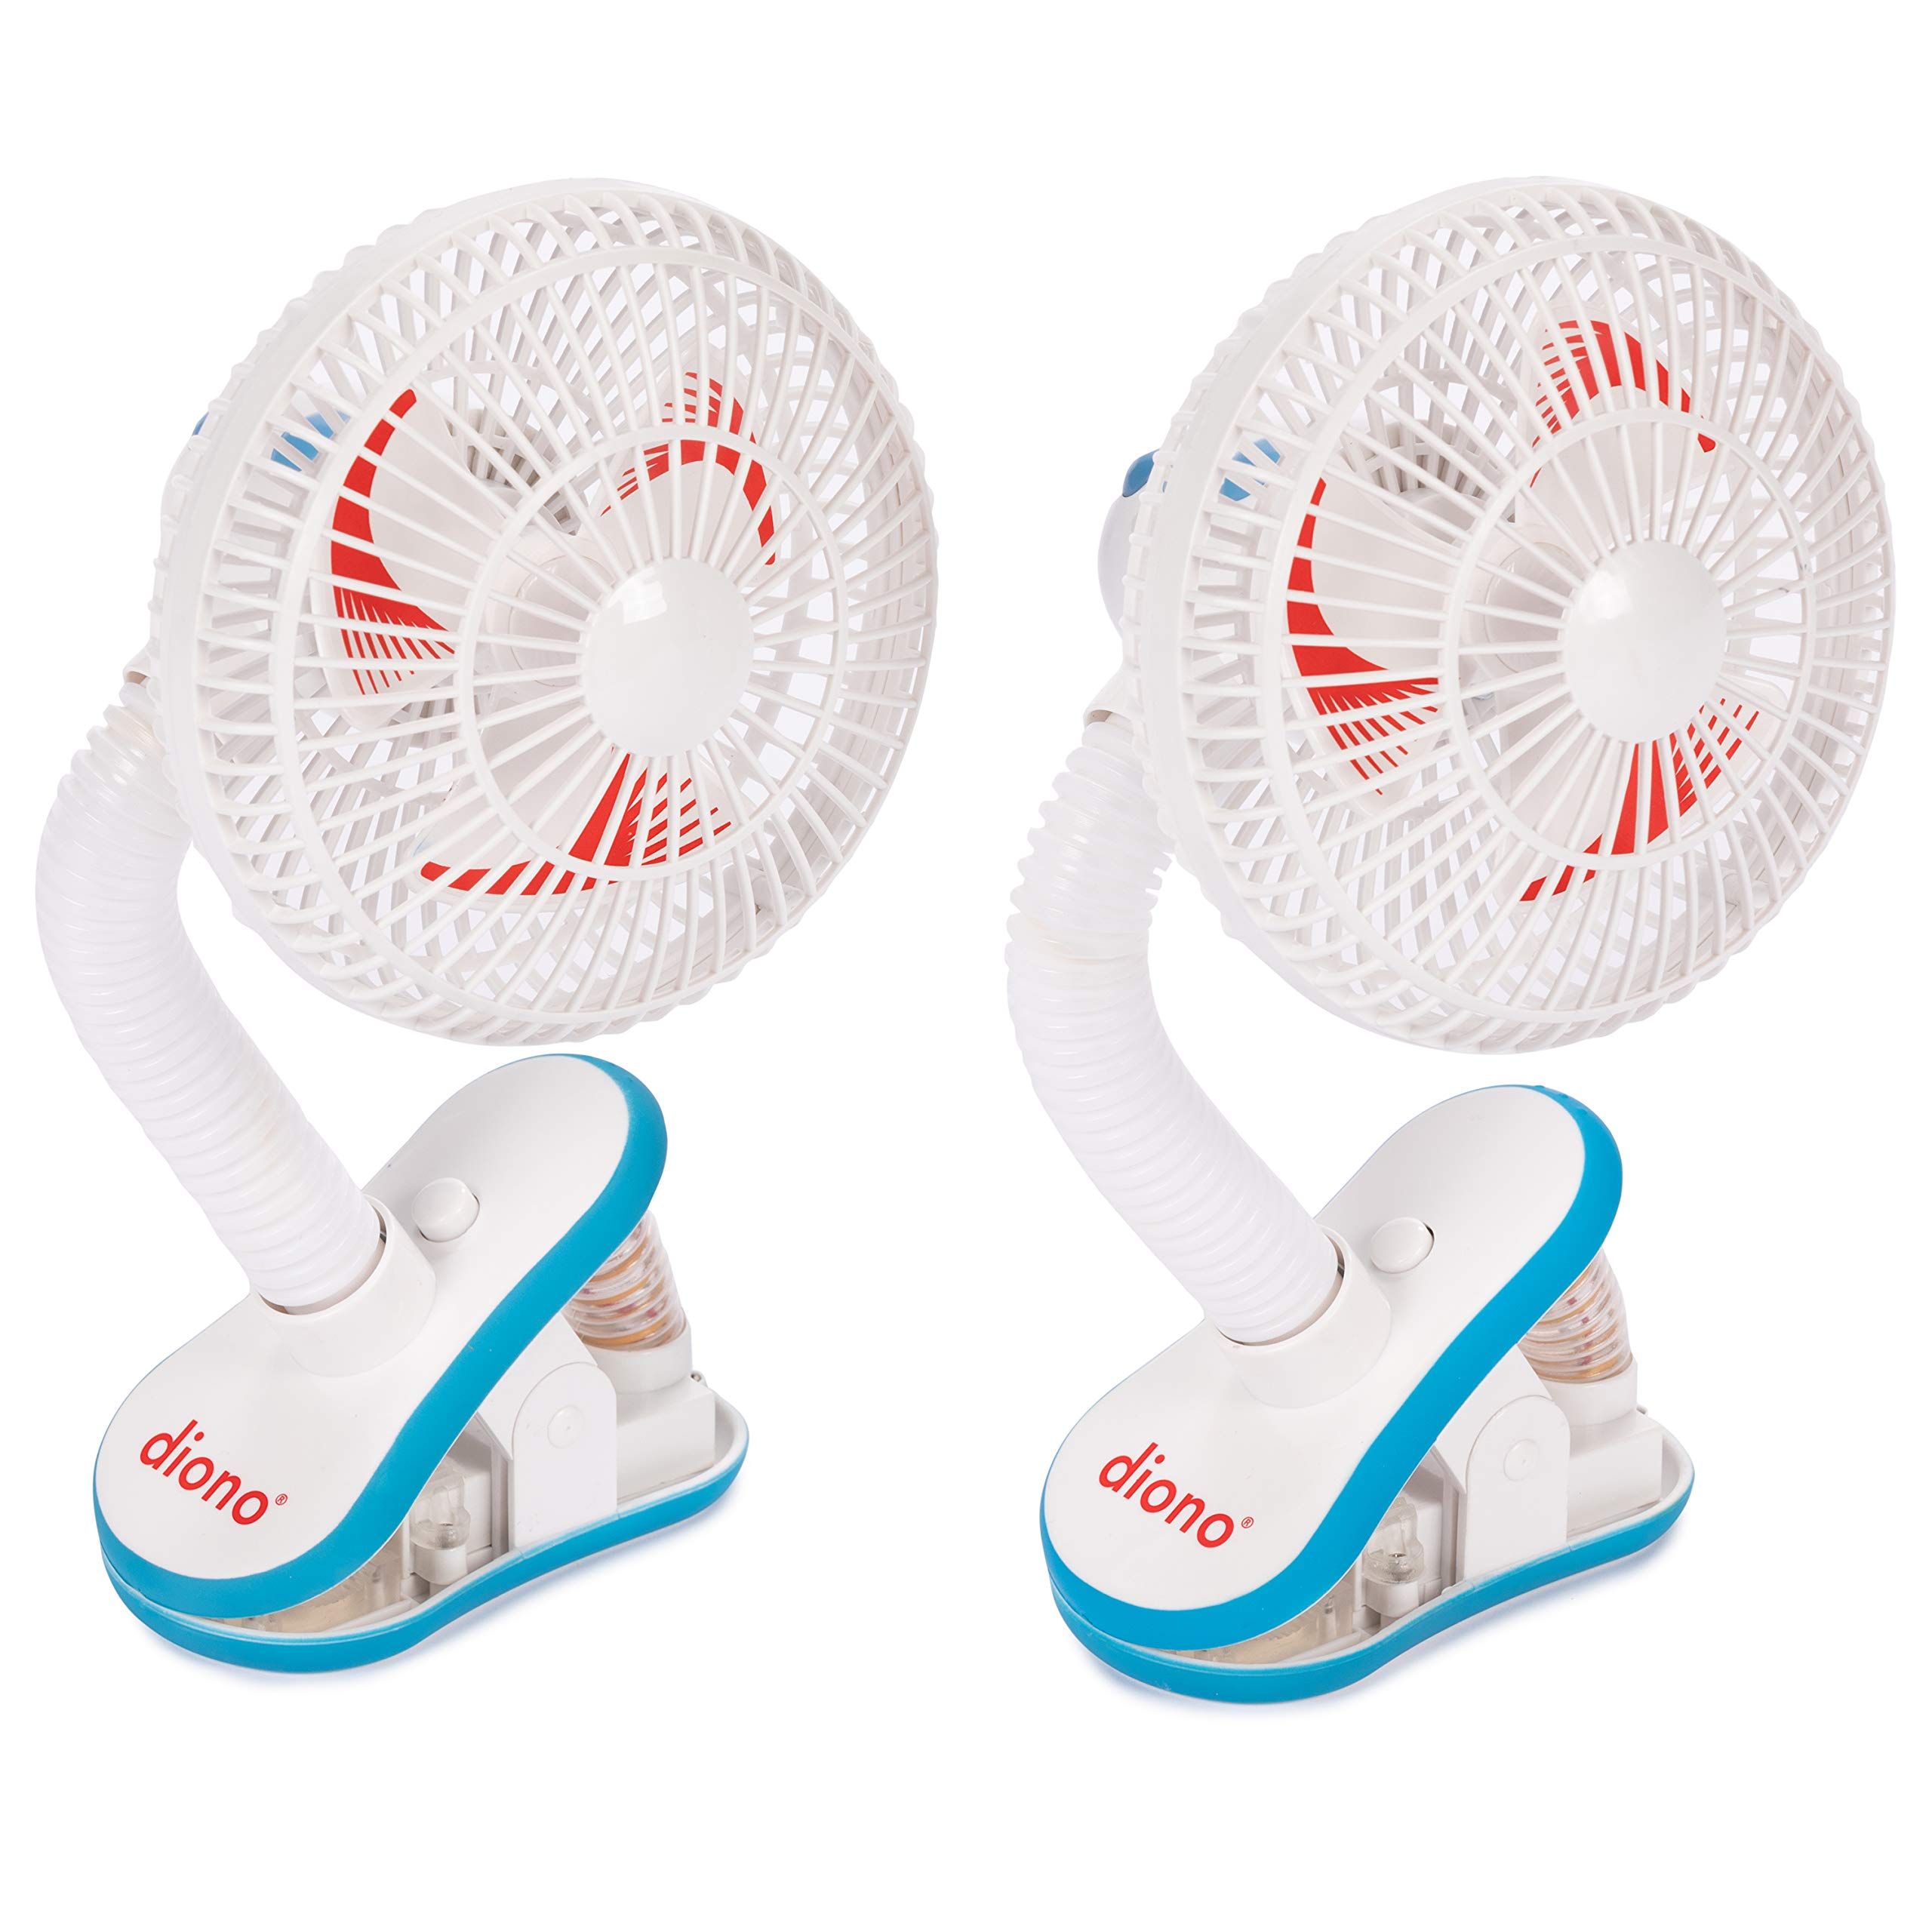 Diono Two2Go Stroller Fan, 2-pk, White by Diono